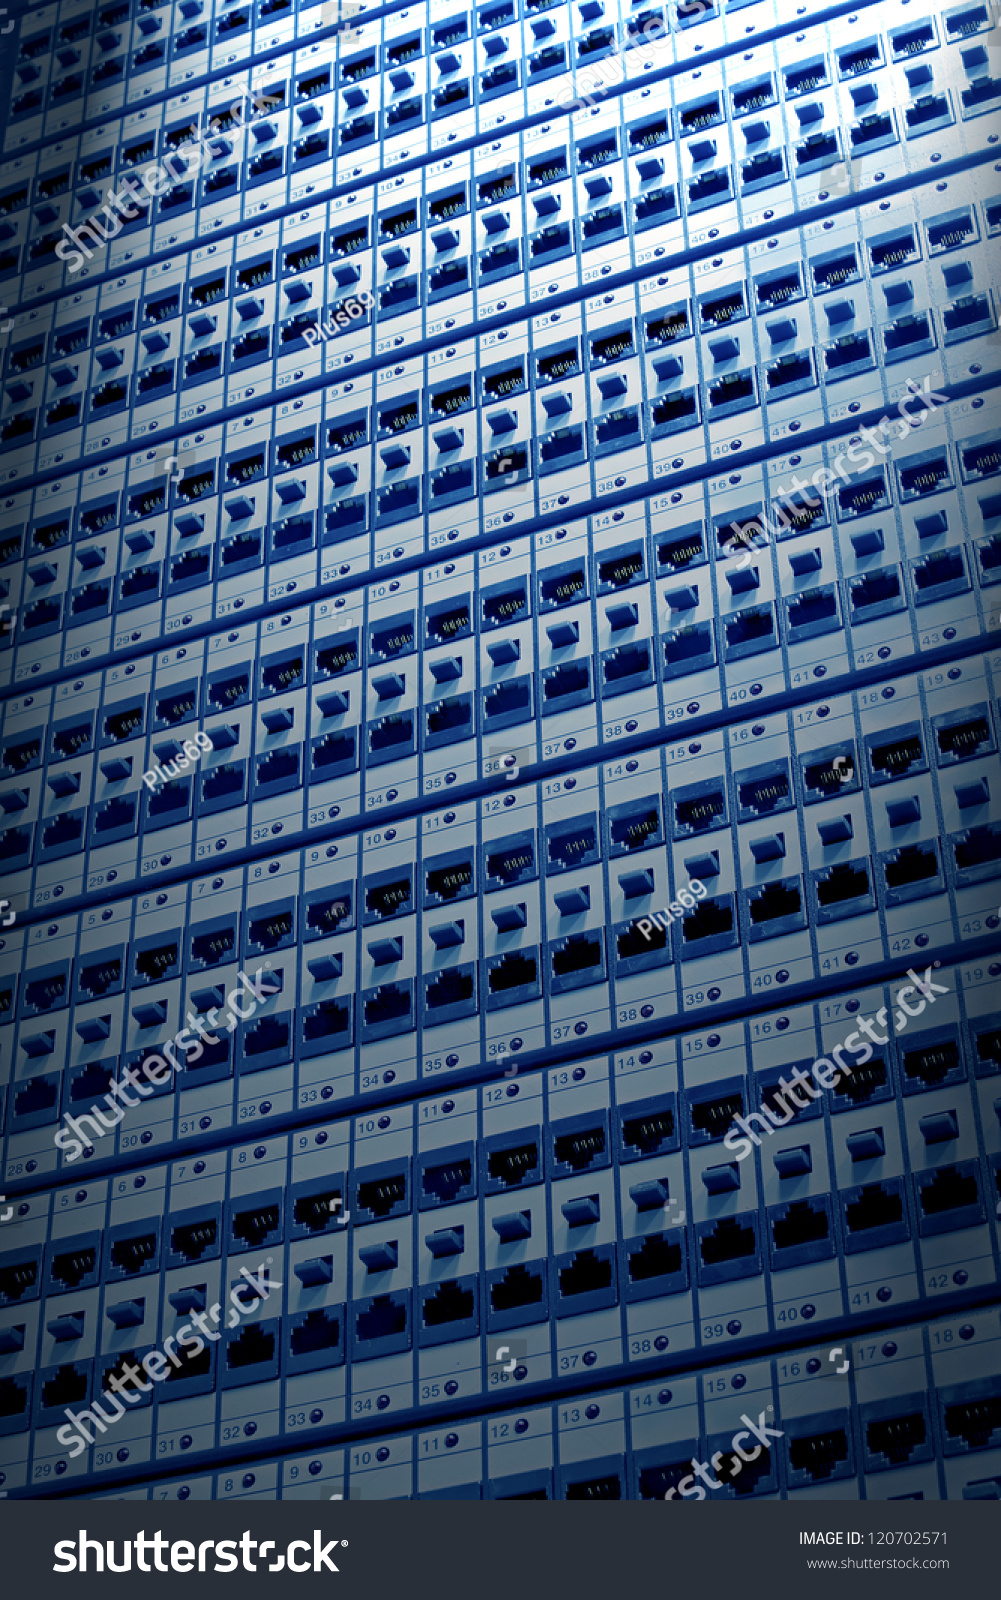 Kind Wiring Closet Patch Panels 6th Stock Illustration 120702571 Internet Of With 6 Th Category In The Background